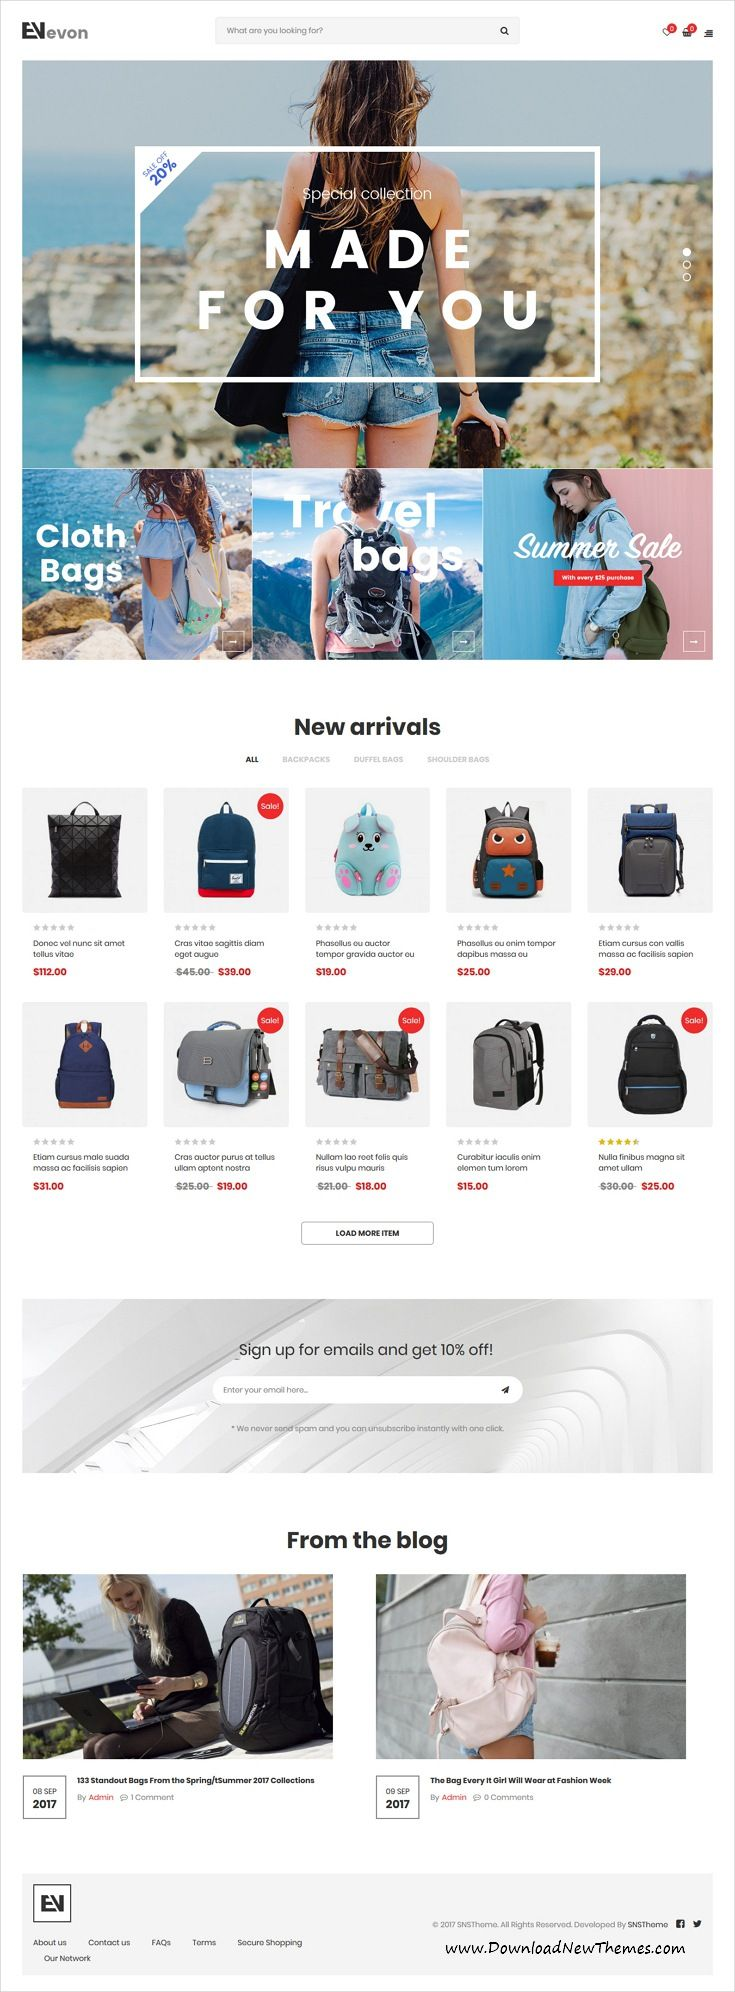 Evon is clean, stylish and modern design 12+ responsive WooCommerce WordPress #template for stunning #onlineshopping eCommerce #website to live preview & download click on image or Visit